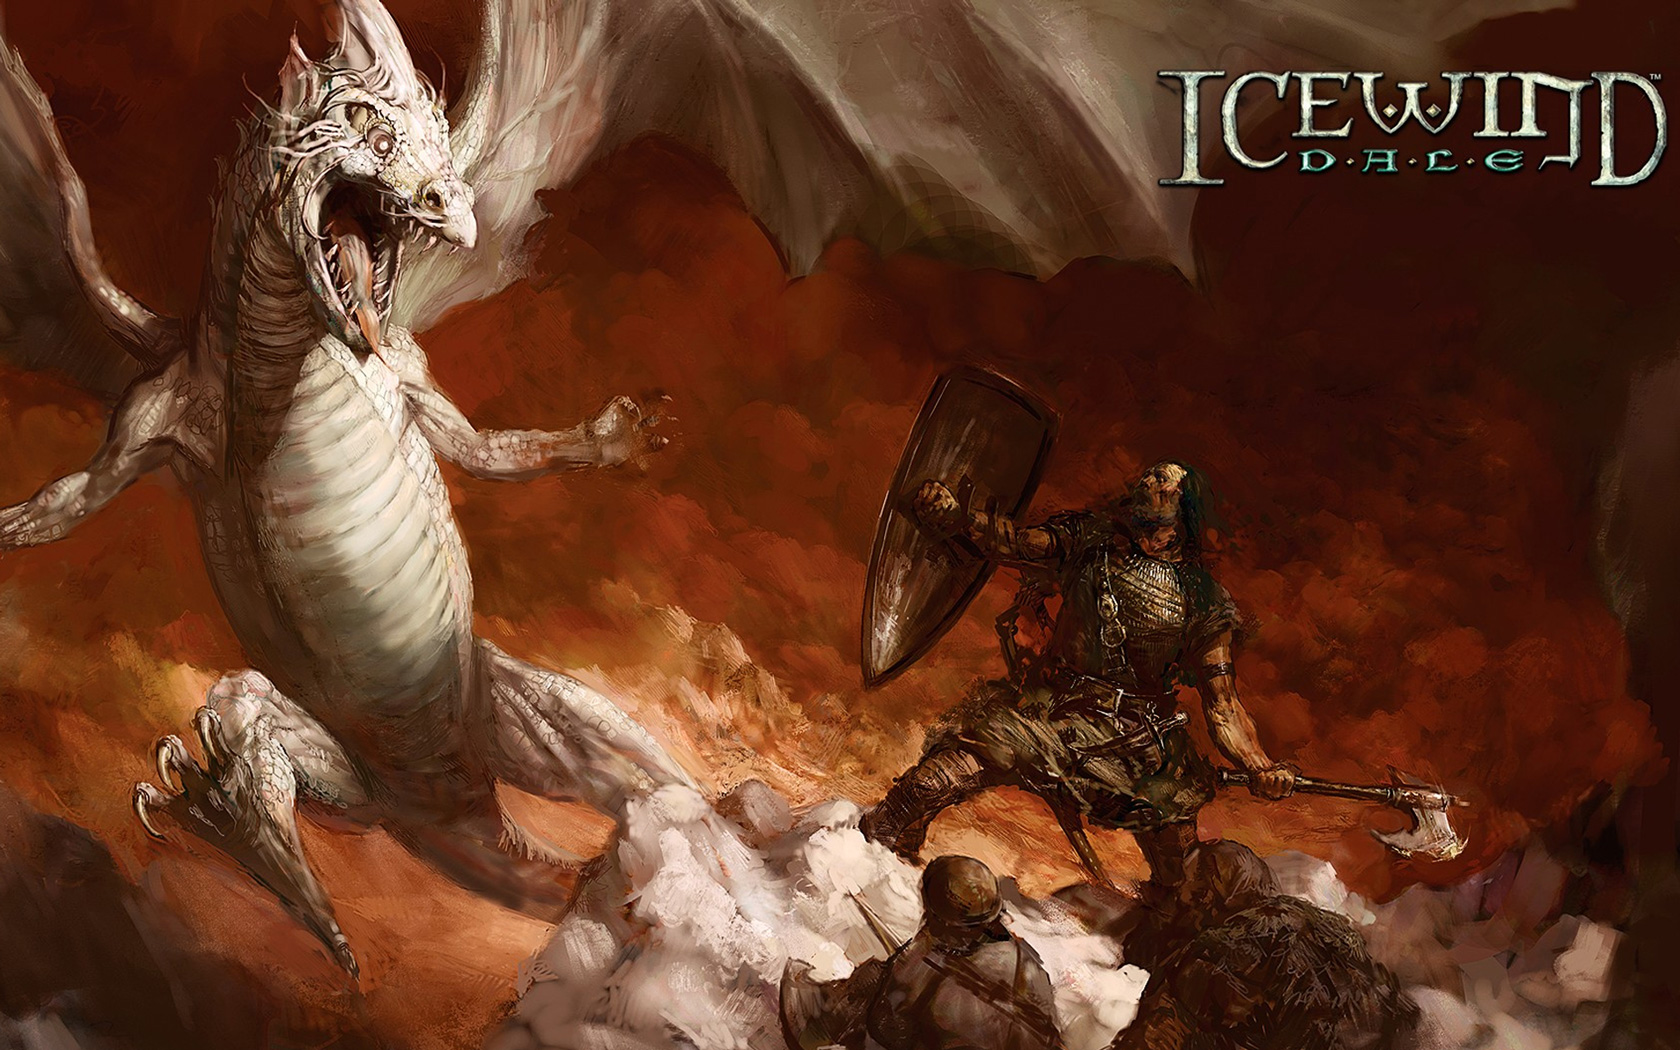 Free Icewind Dale Wallpaper in 1680x1050